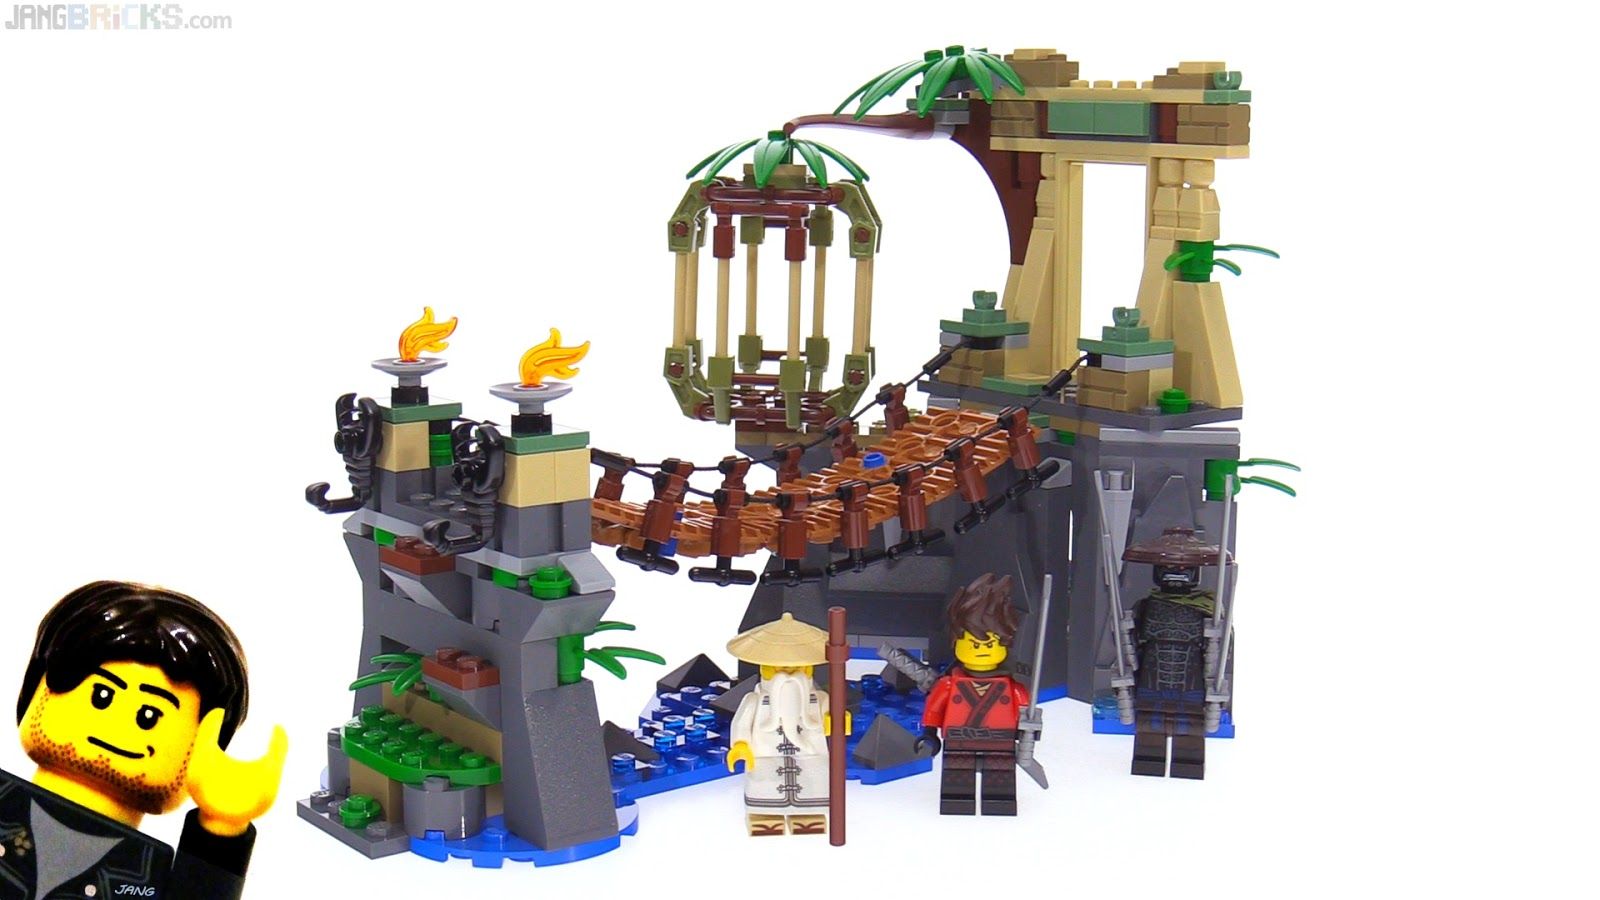 I recently hosted a Lego Playdate Birthday Party for my just-turned-five-year-old son, and thought I'd share the party plans and resources for anyone who may be interested in a similar party.